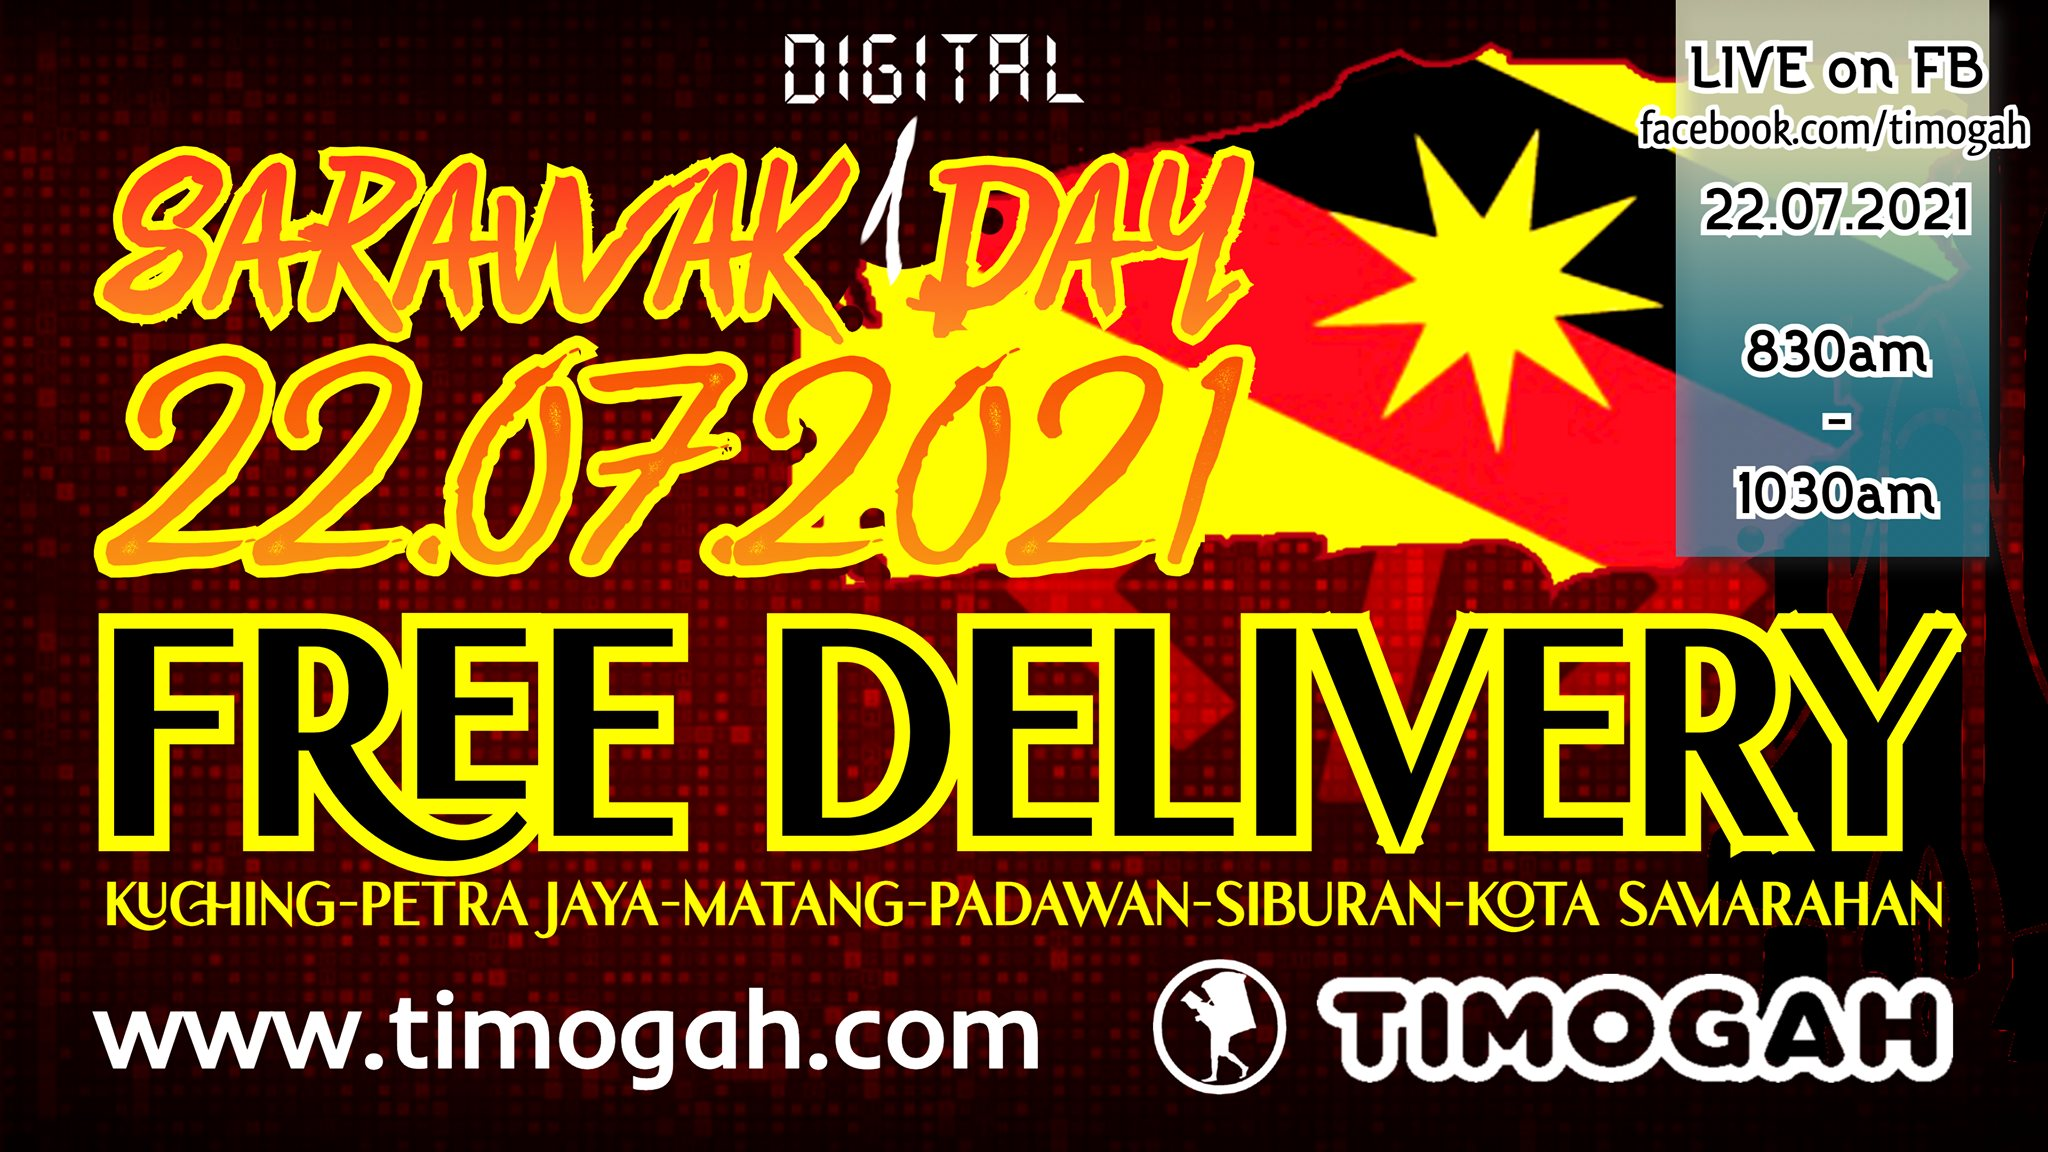 FREE DELIVERY on SARAWAK DAY! Lets shop online.  Watch us LIVE tomorrow morning …